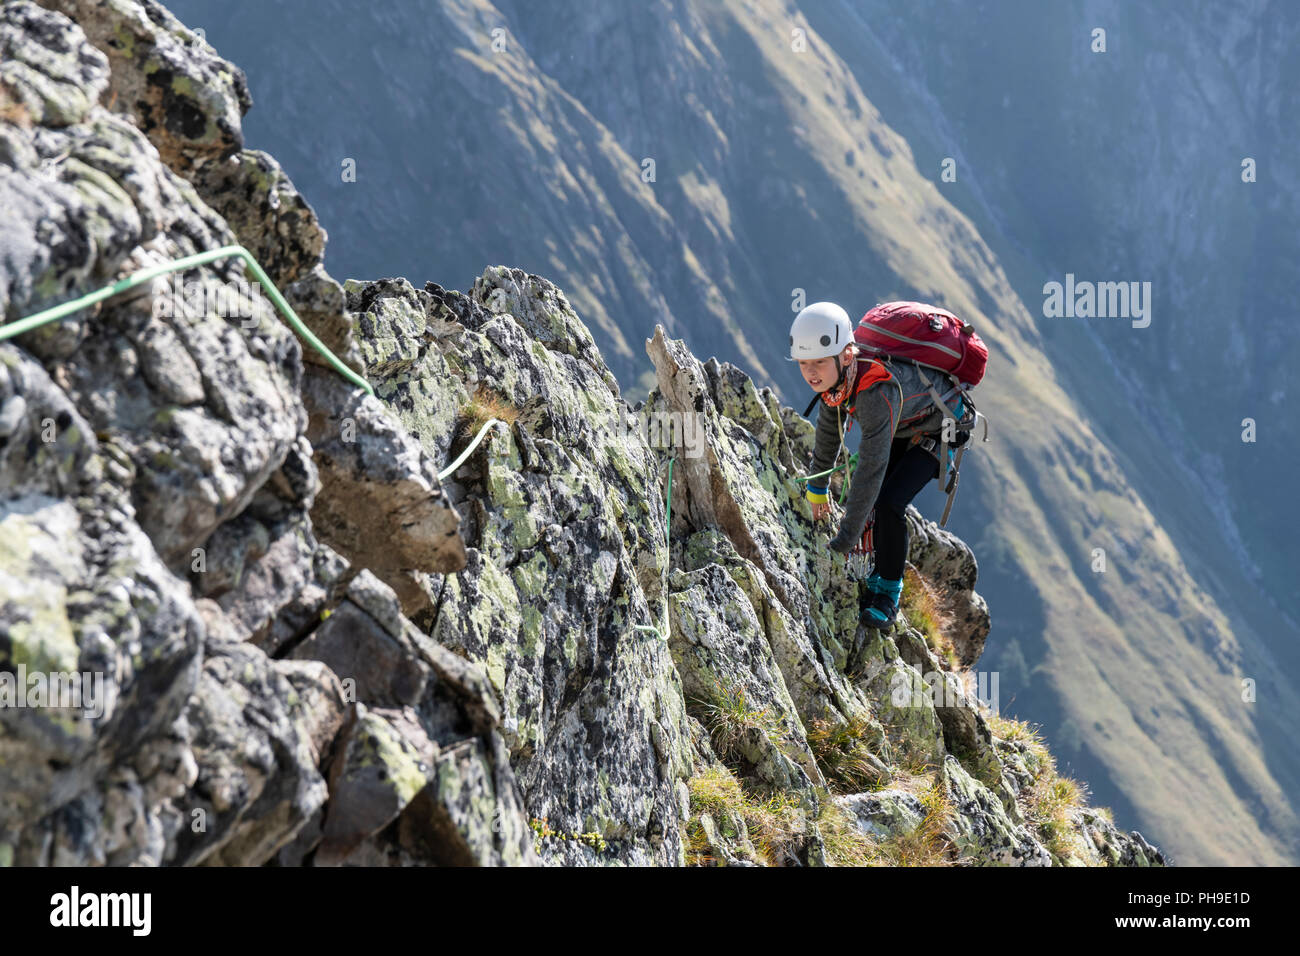 A young boy climbing in the Wiwannihorn in Switzerland Stock Photo